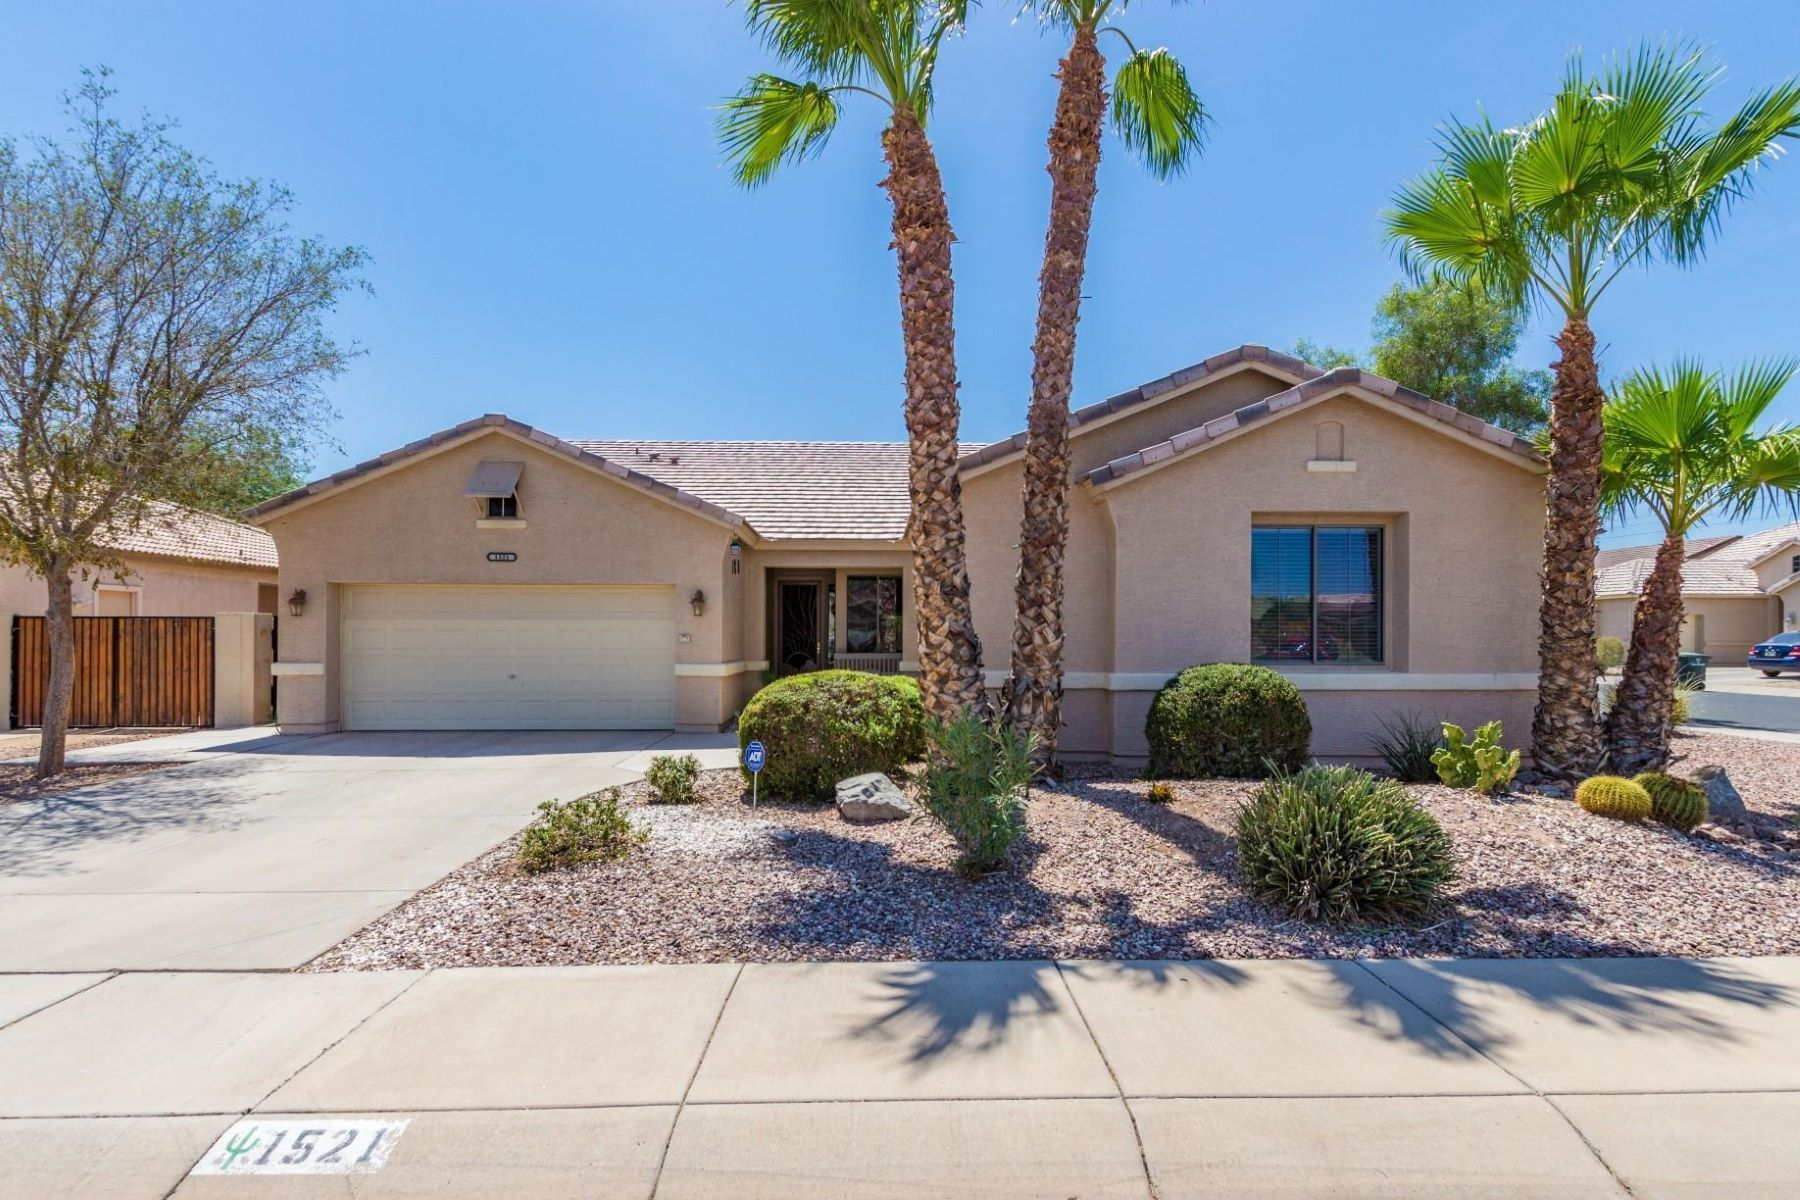 Single Family Homes for Active at Highland Manor 1521 East Irene Drive Casa Grande, Arizona 85122 United States